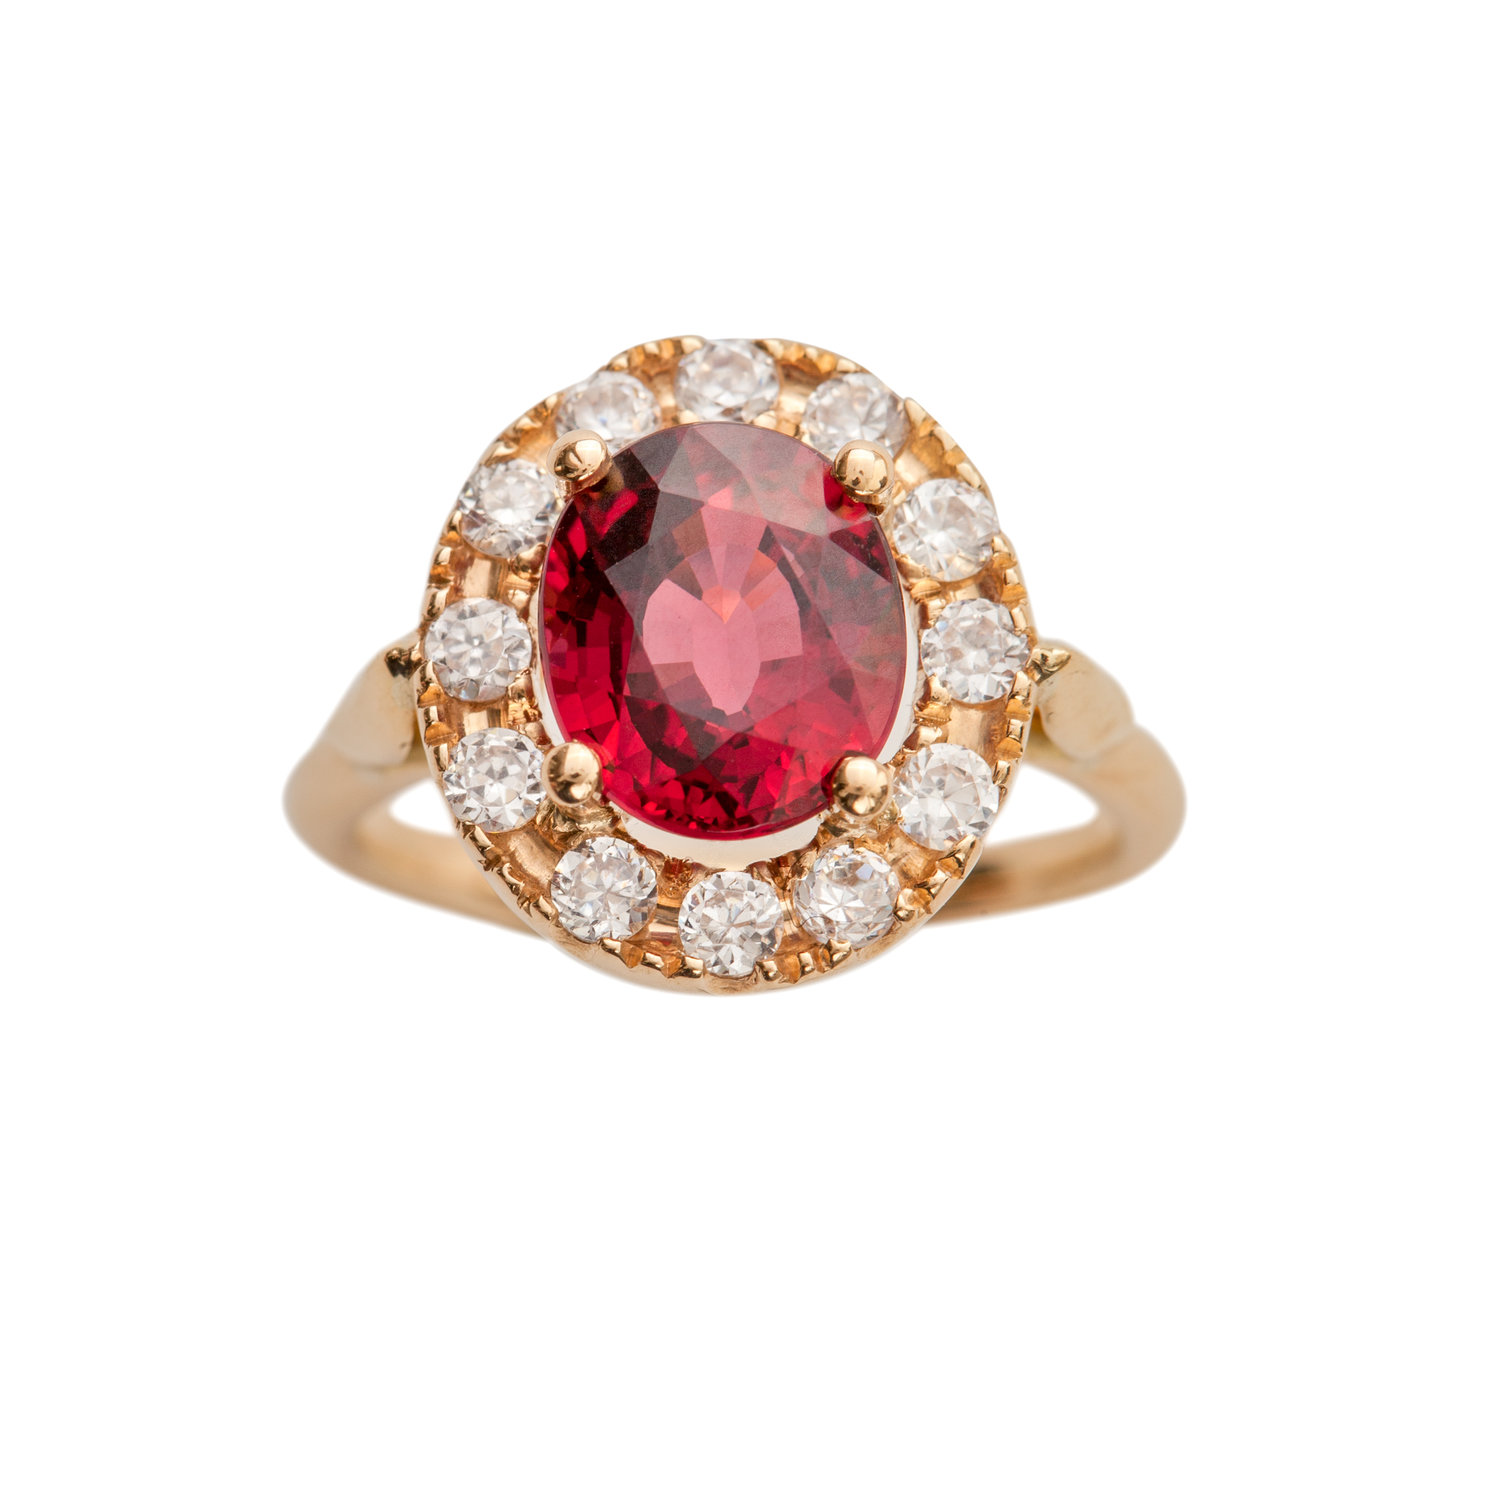 RED IS THE COLOR OF LOVE RING - 90.000 NOK. 18 ct yellow gold. 1 ct red ruby. 0,40 ct diamonds.